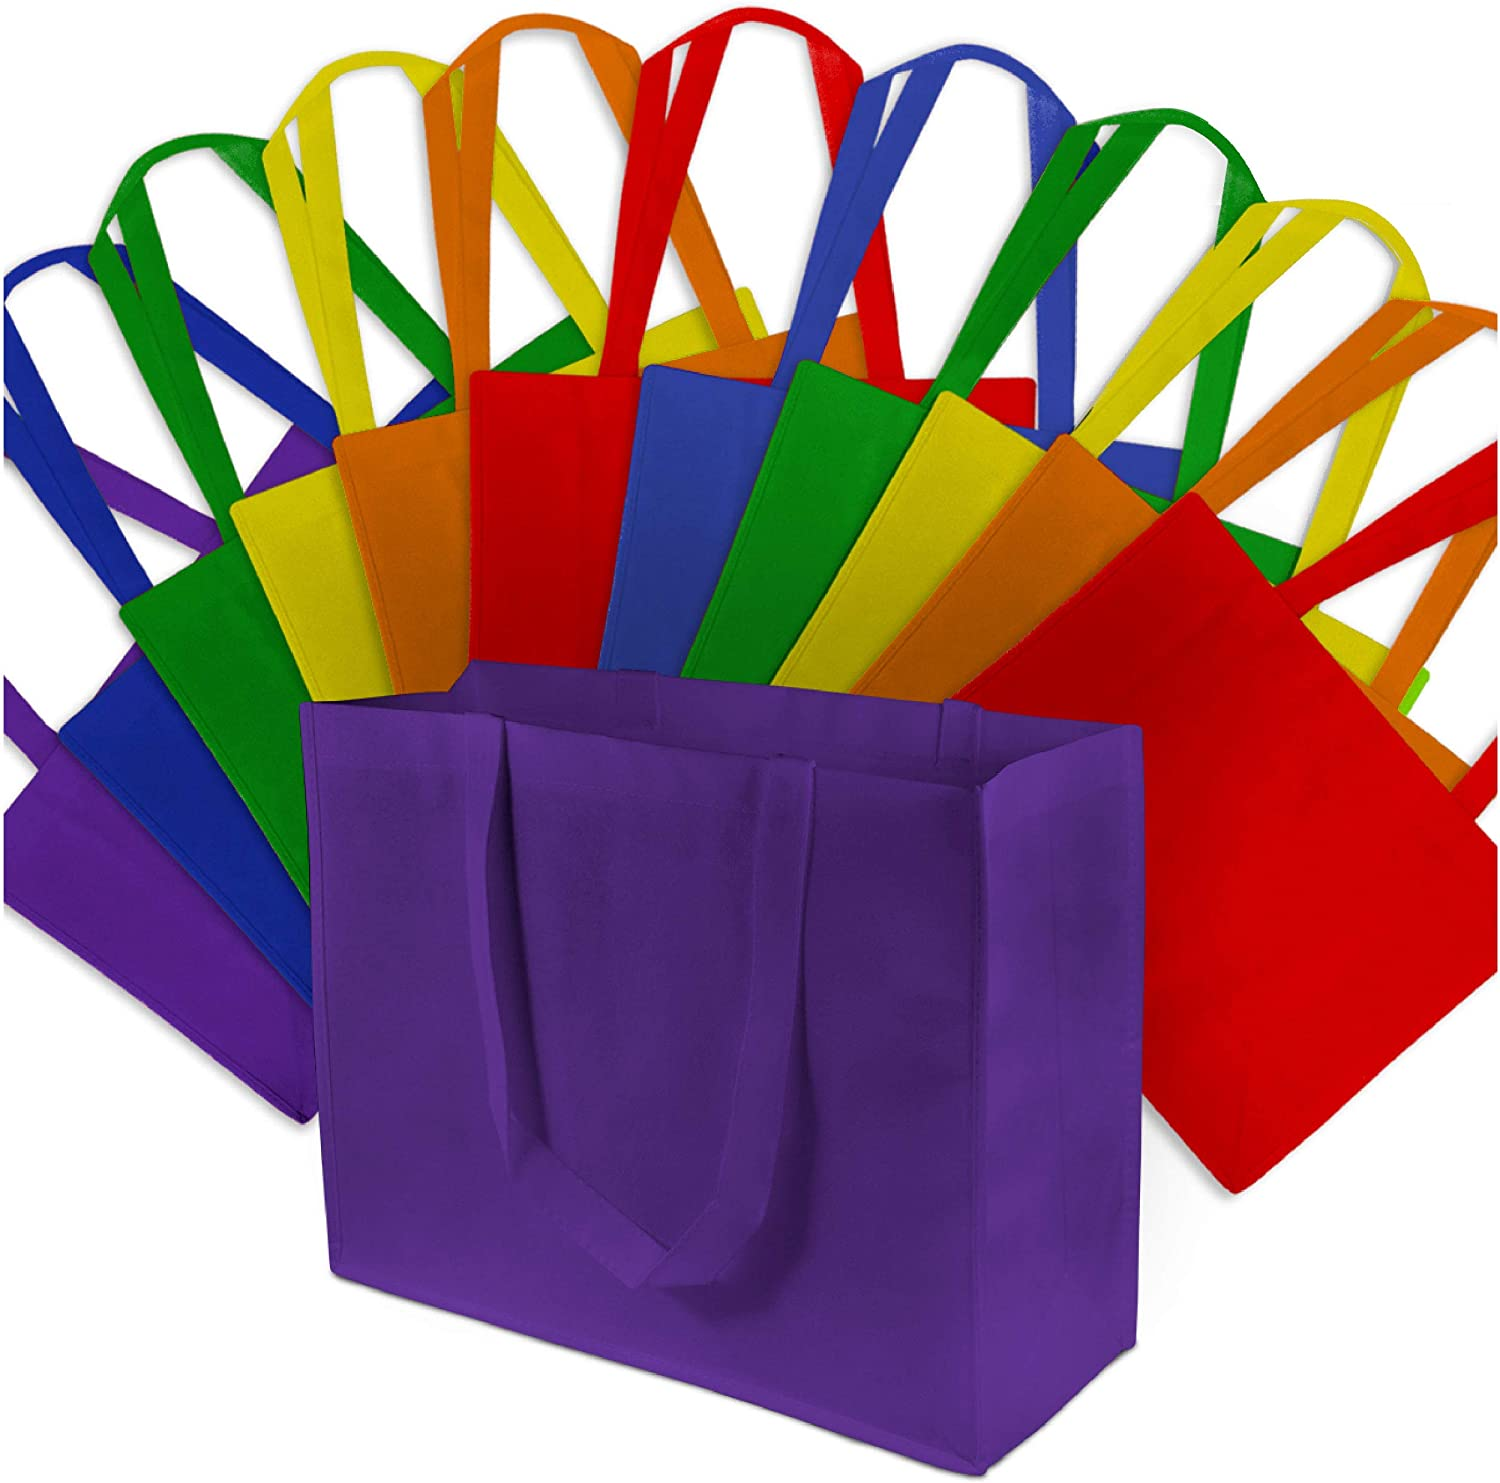 Large Multi-Color Reusable Gift Bags, Shopping Bags with Handles, Grocery Bags, Fabric Tote Bags, Merchandise Bags, Foldable, Strong and Eco Friendly 12 Pcs. 16x6x12""